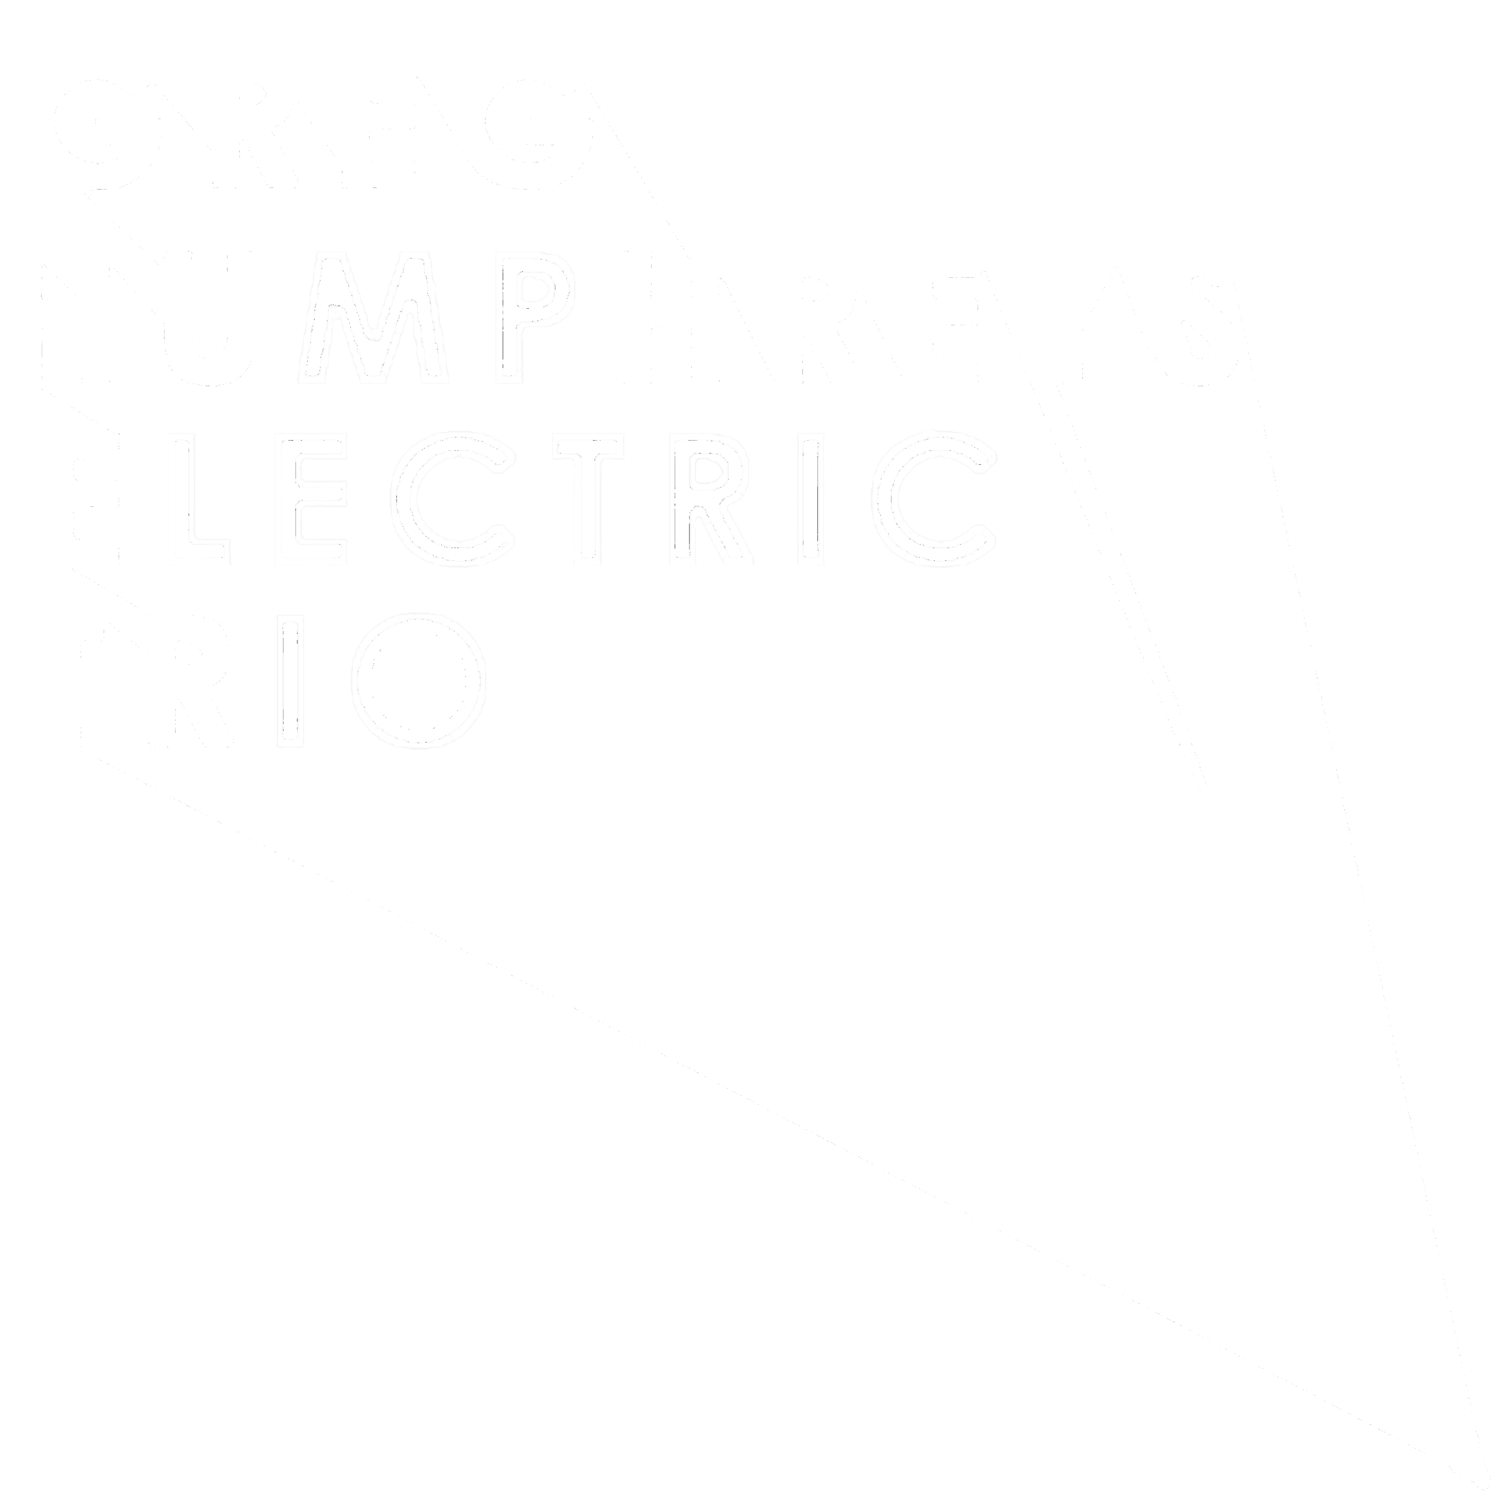 Greg Humphreys Electric Trio